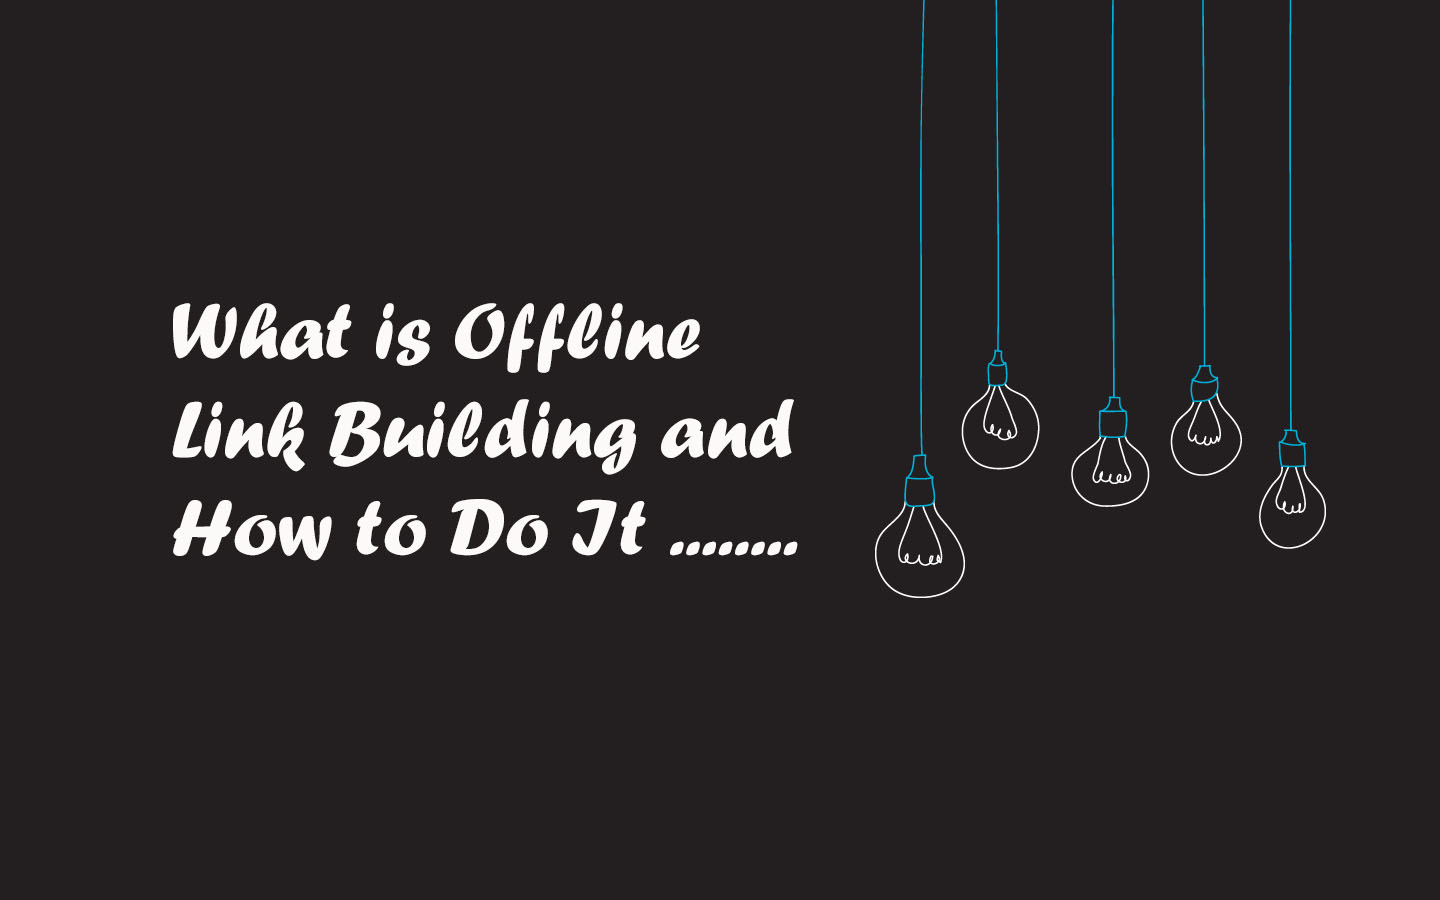 What is Offline Link Building and How to Do It